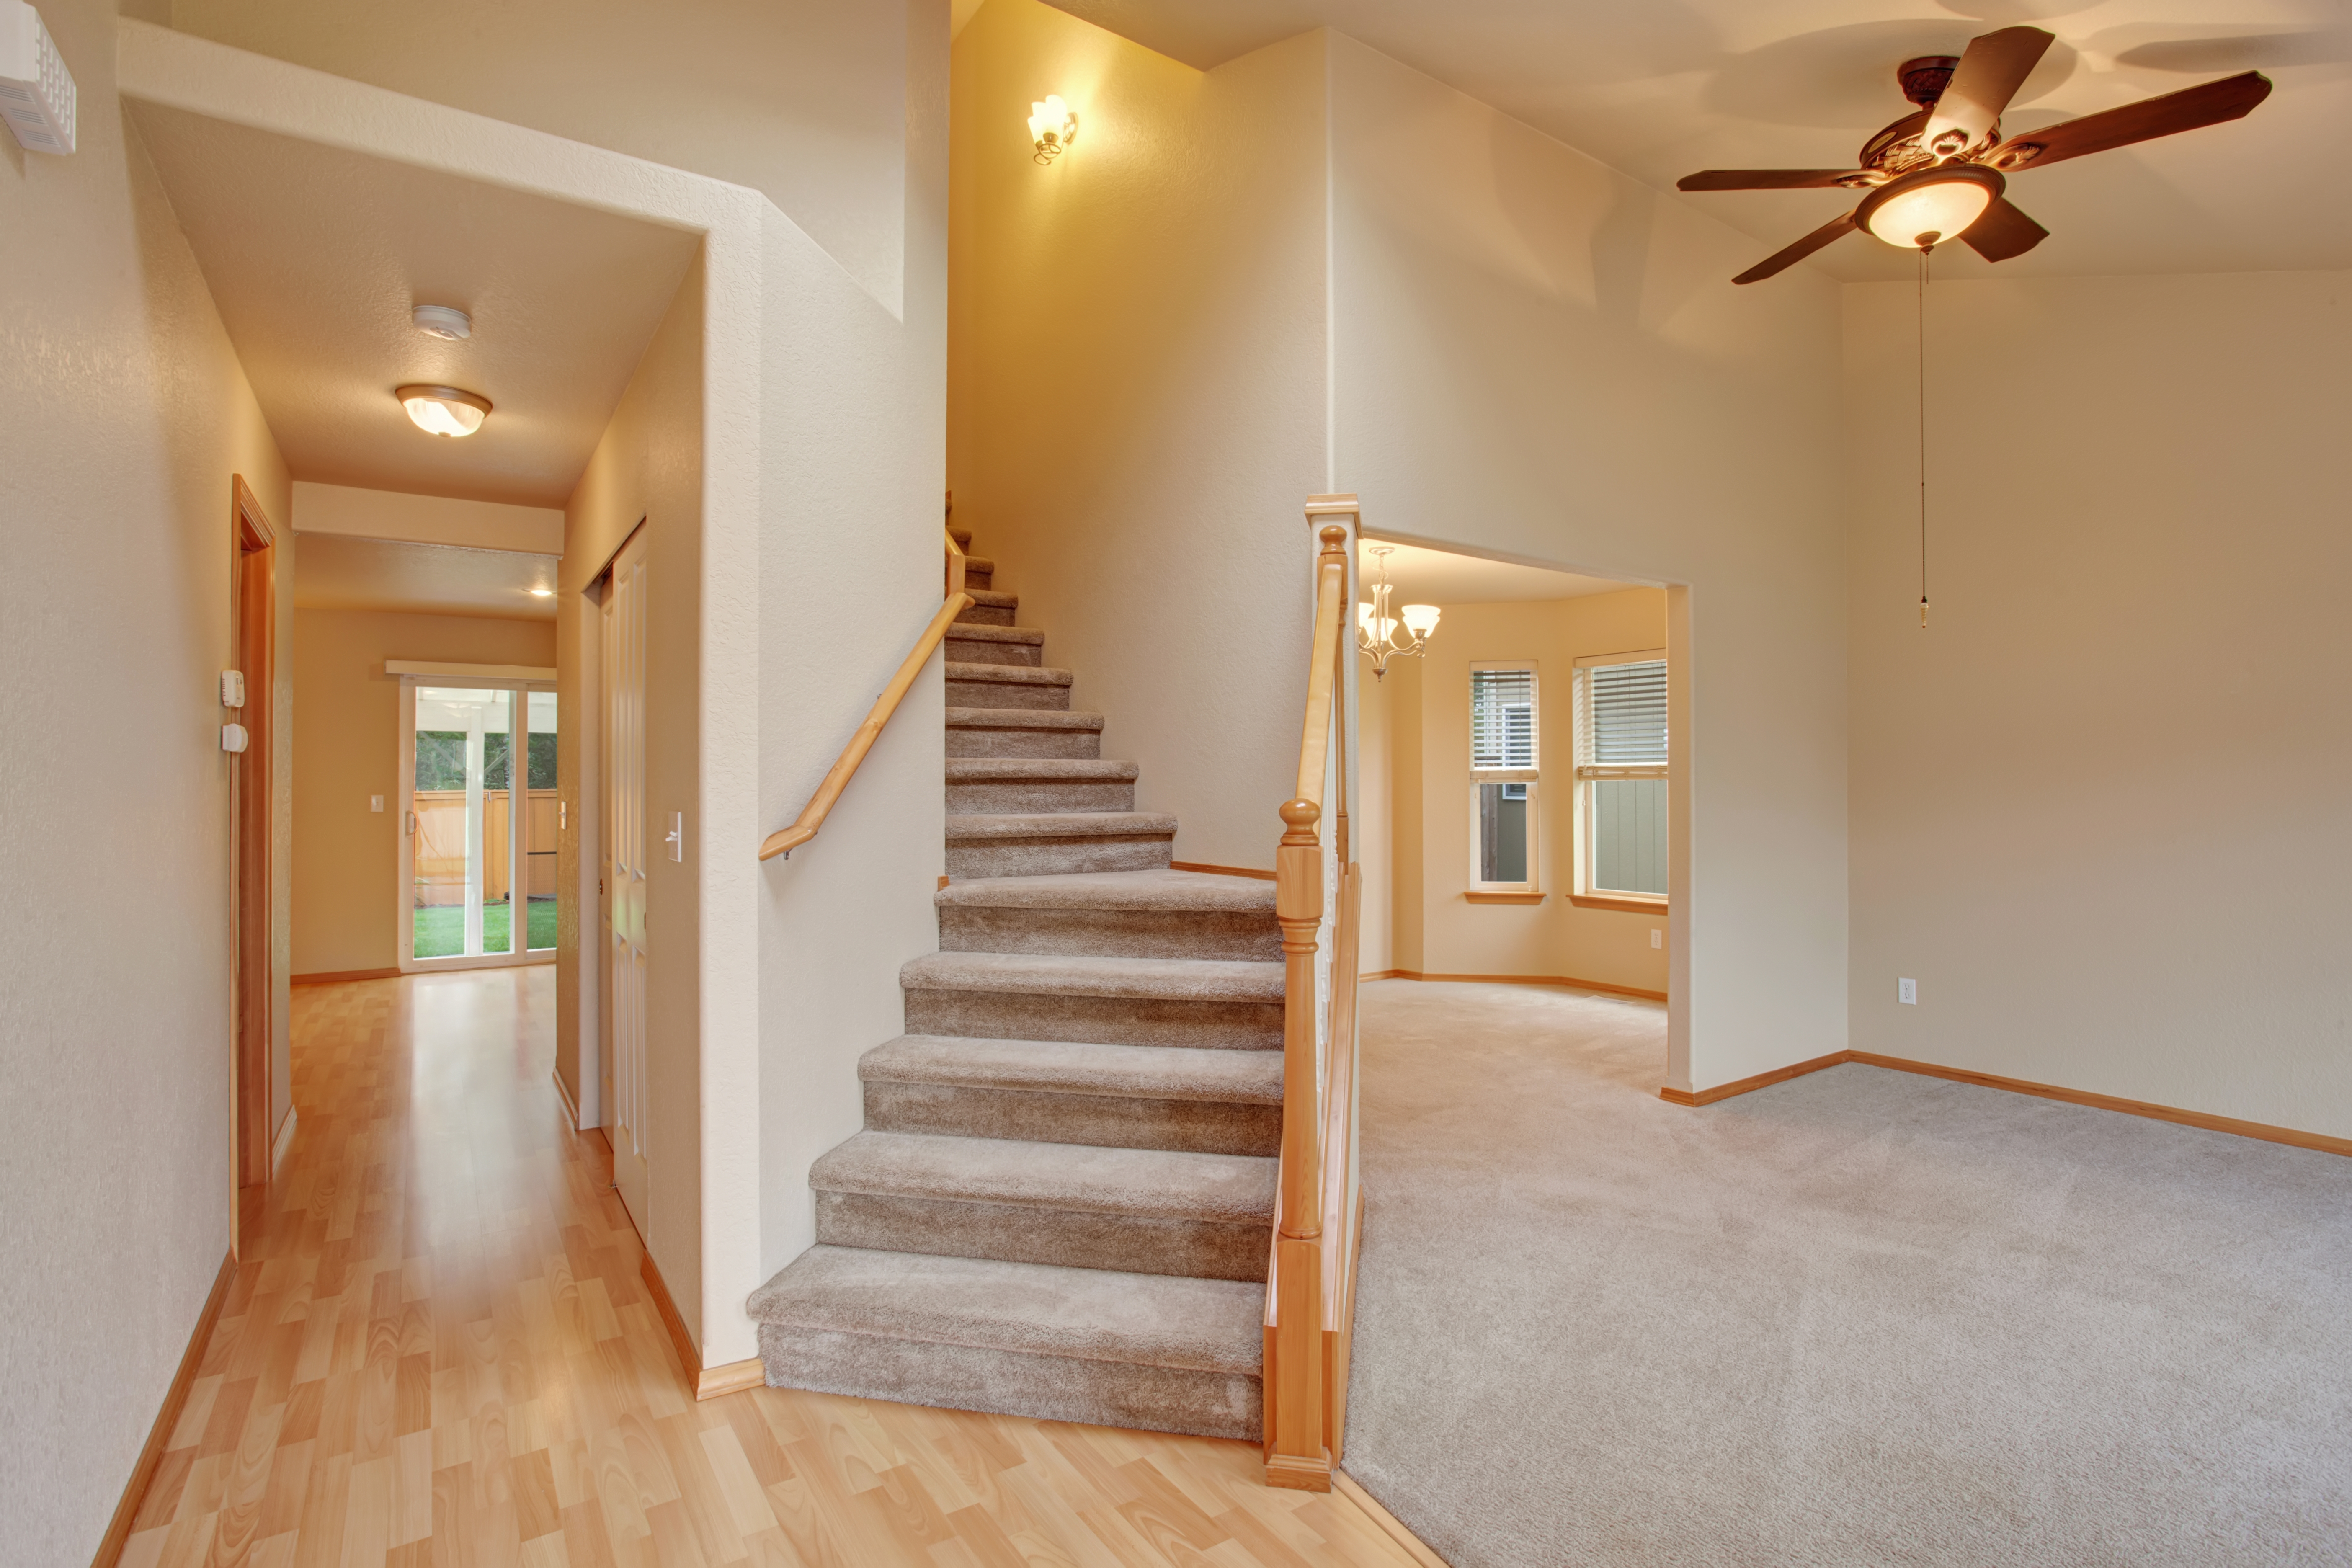 How To Lay Carpet On Stairs And The Landing Builddirectlearning | Loose Carpet On Stairs | Runner | Fixing | Stair Treads | Stair Nosing | Laminate Flooring